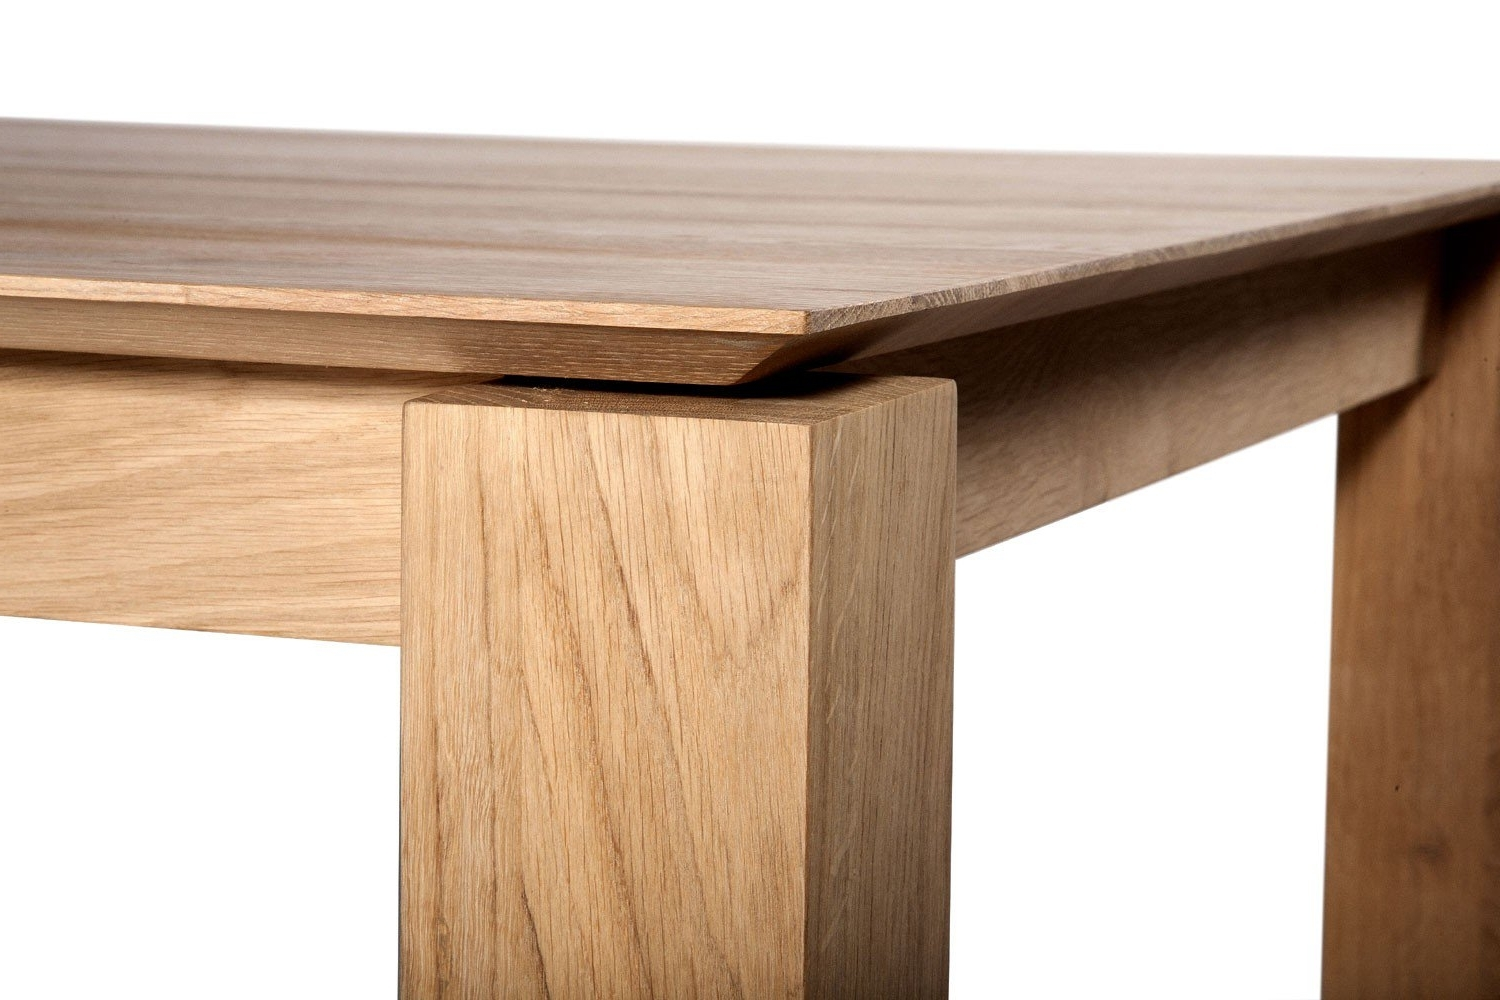 Oak Dining Furniture Intended For Famous Ethnicraft Slice Oak Dining Tables (View 16 of 25)